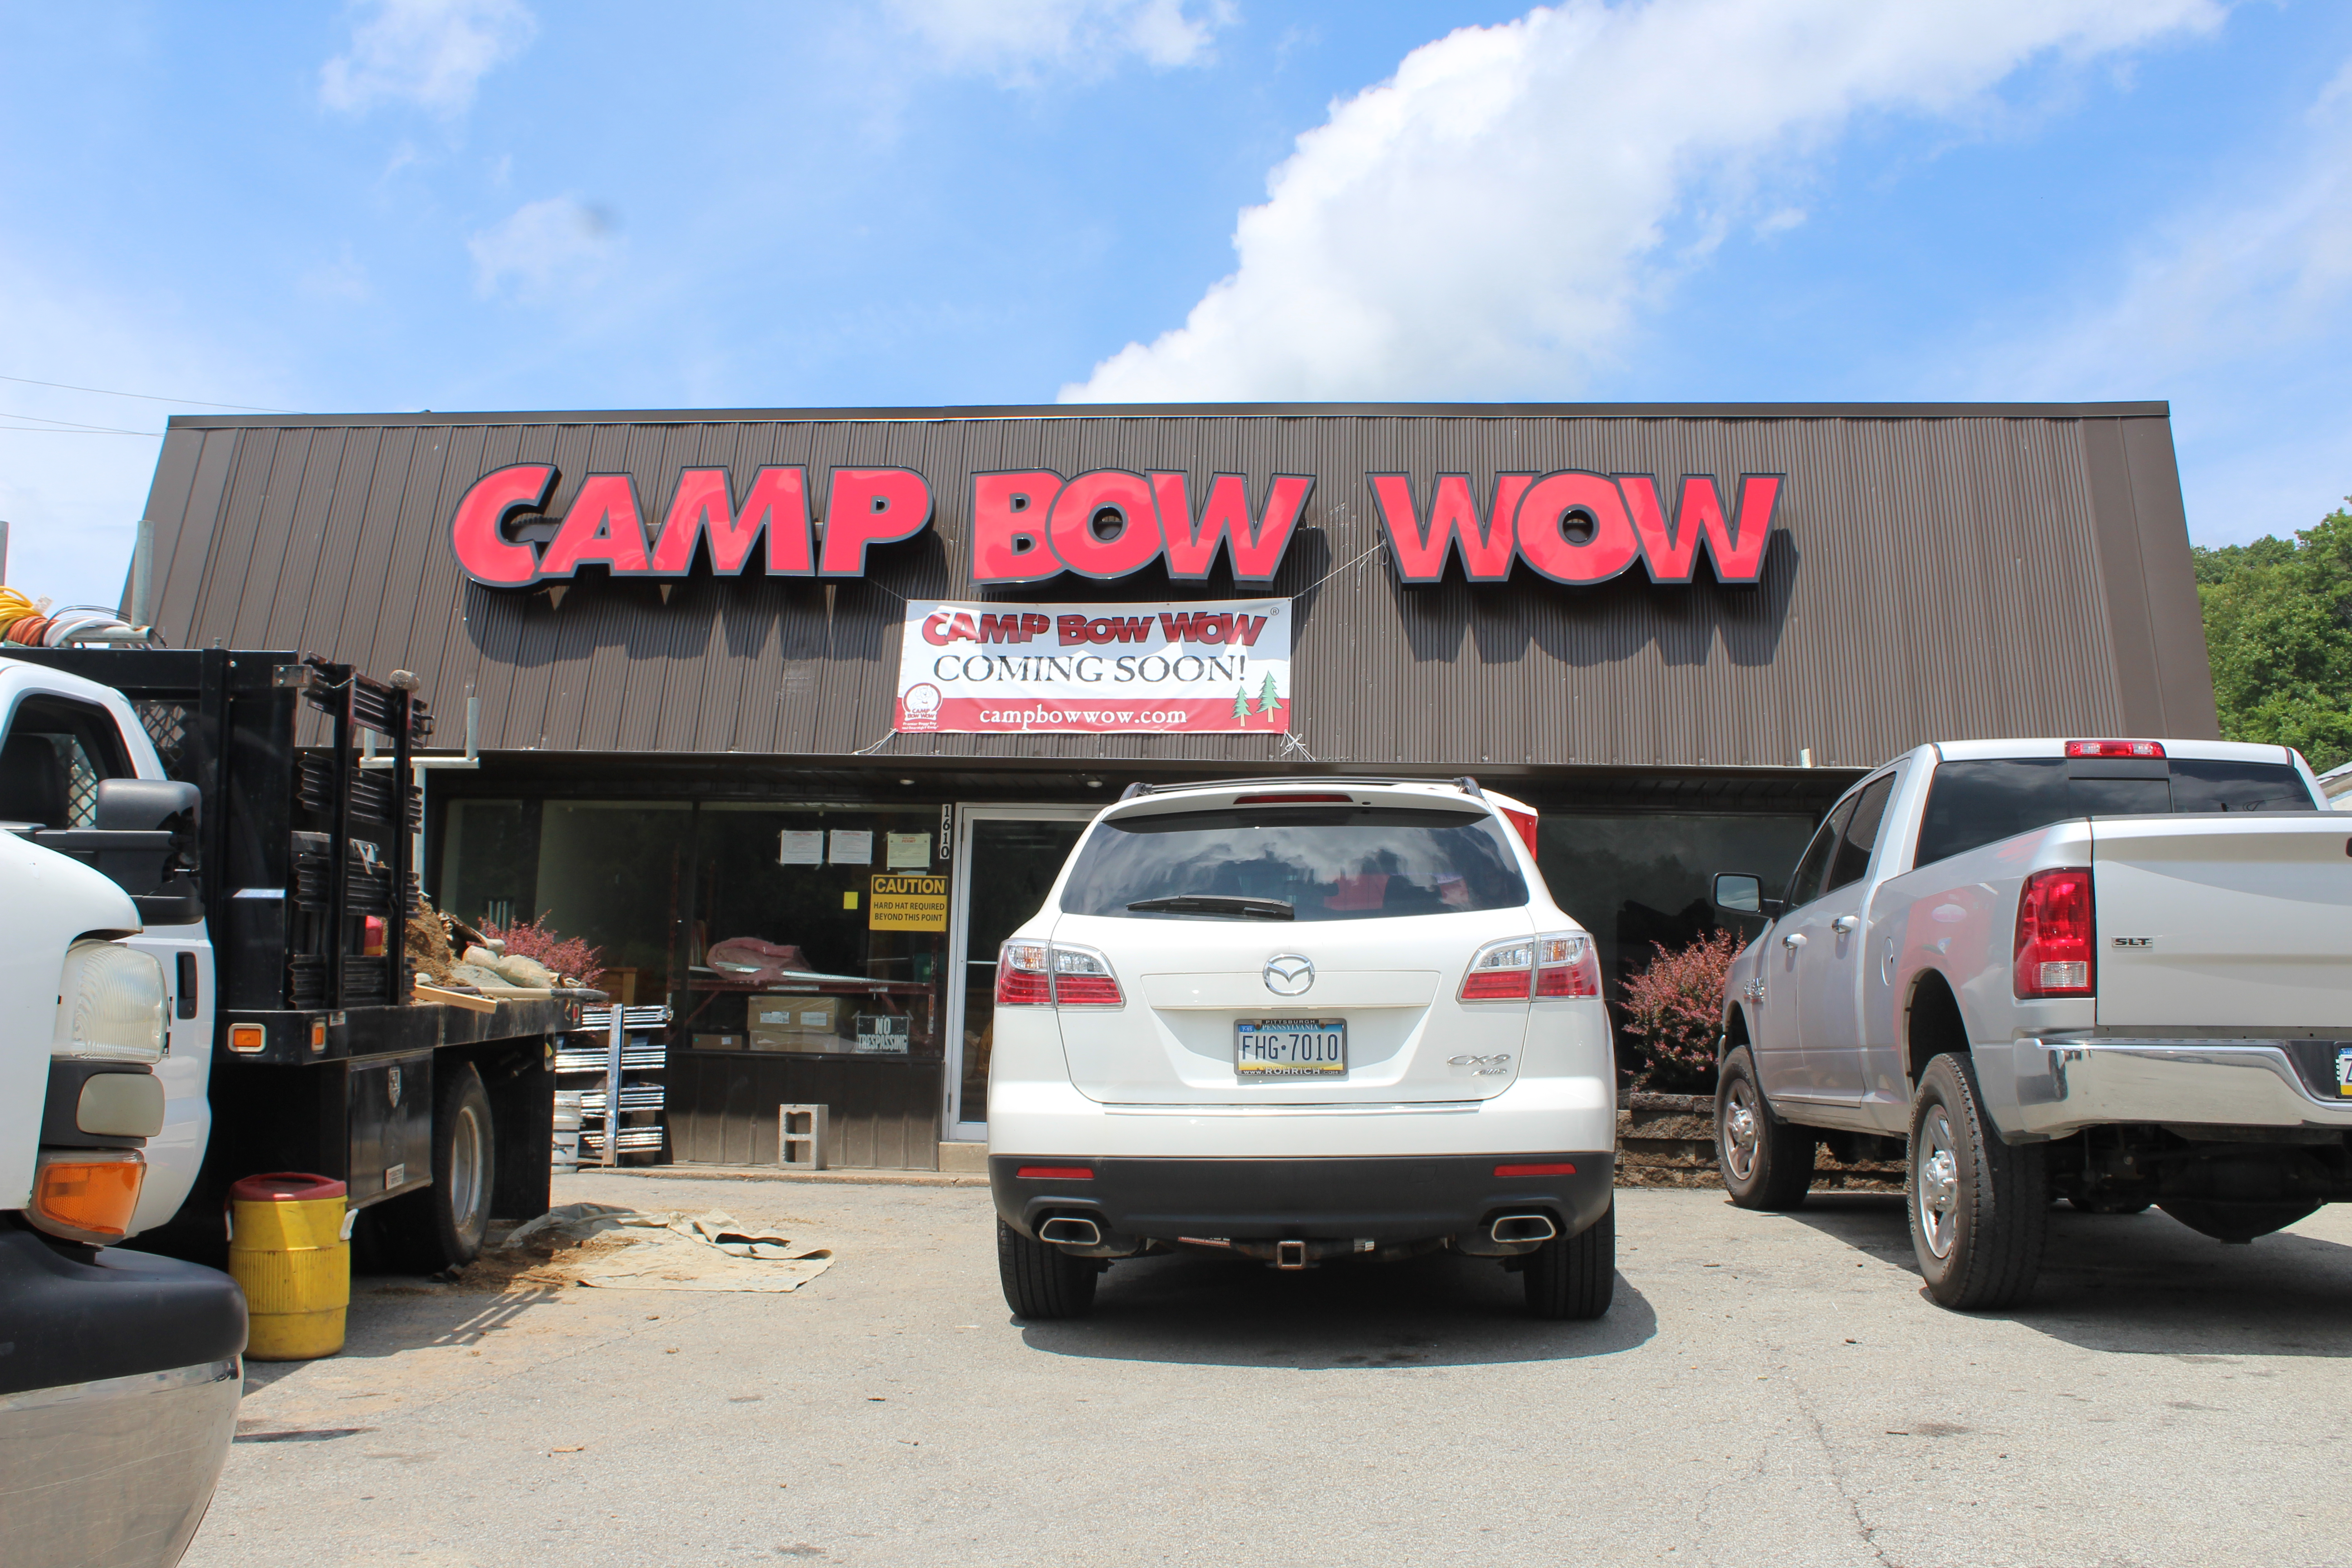 Camp Bow Wow, an Inc. company, is a dog daycare and boarding franchise houndquartered in Broomfield, Colorado. The company was founded in by Heidi Ganahl and it operates over locations in the United States and Canada.